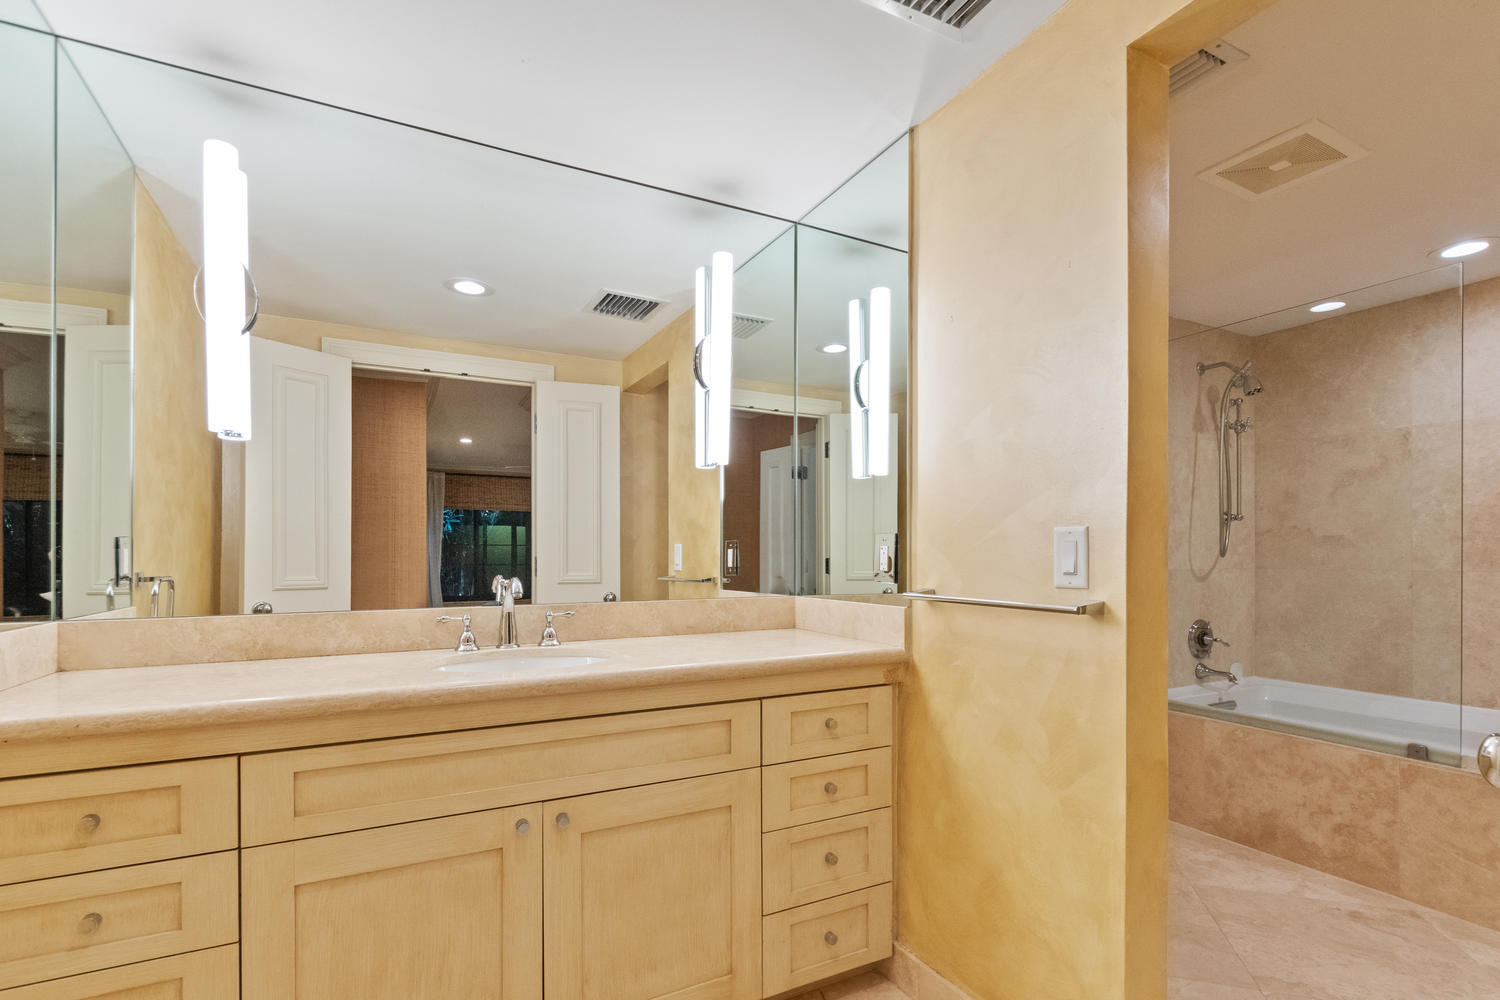 LITTLE POND PARK RESIDENCES CONDO REALTY